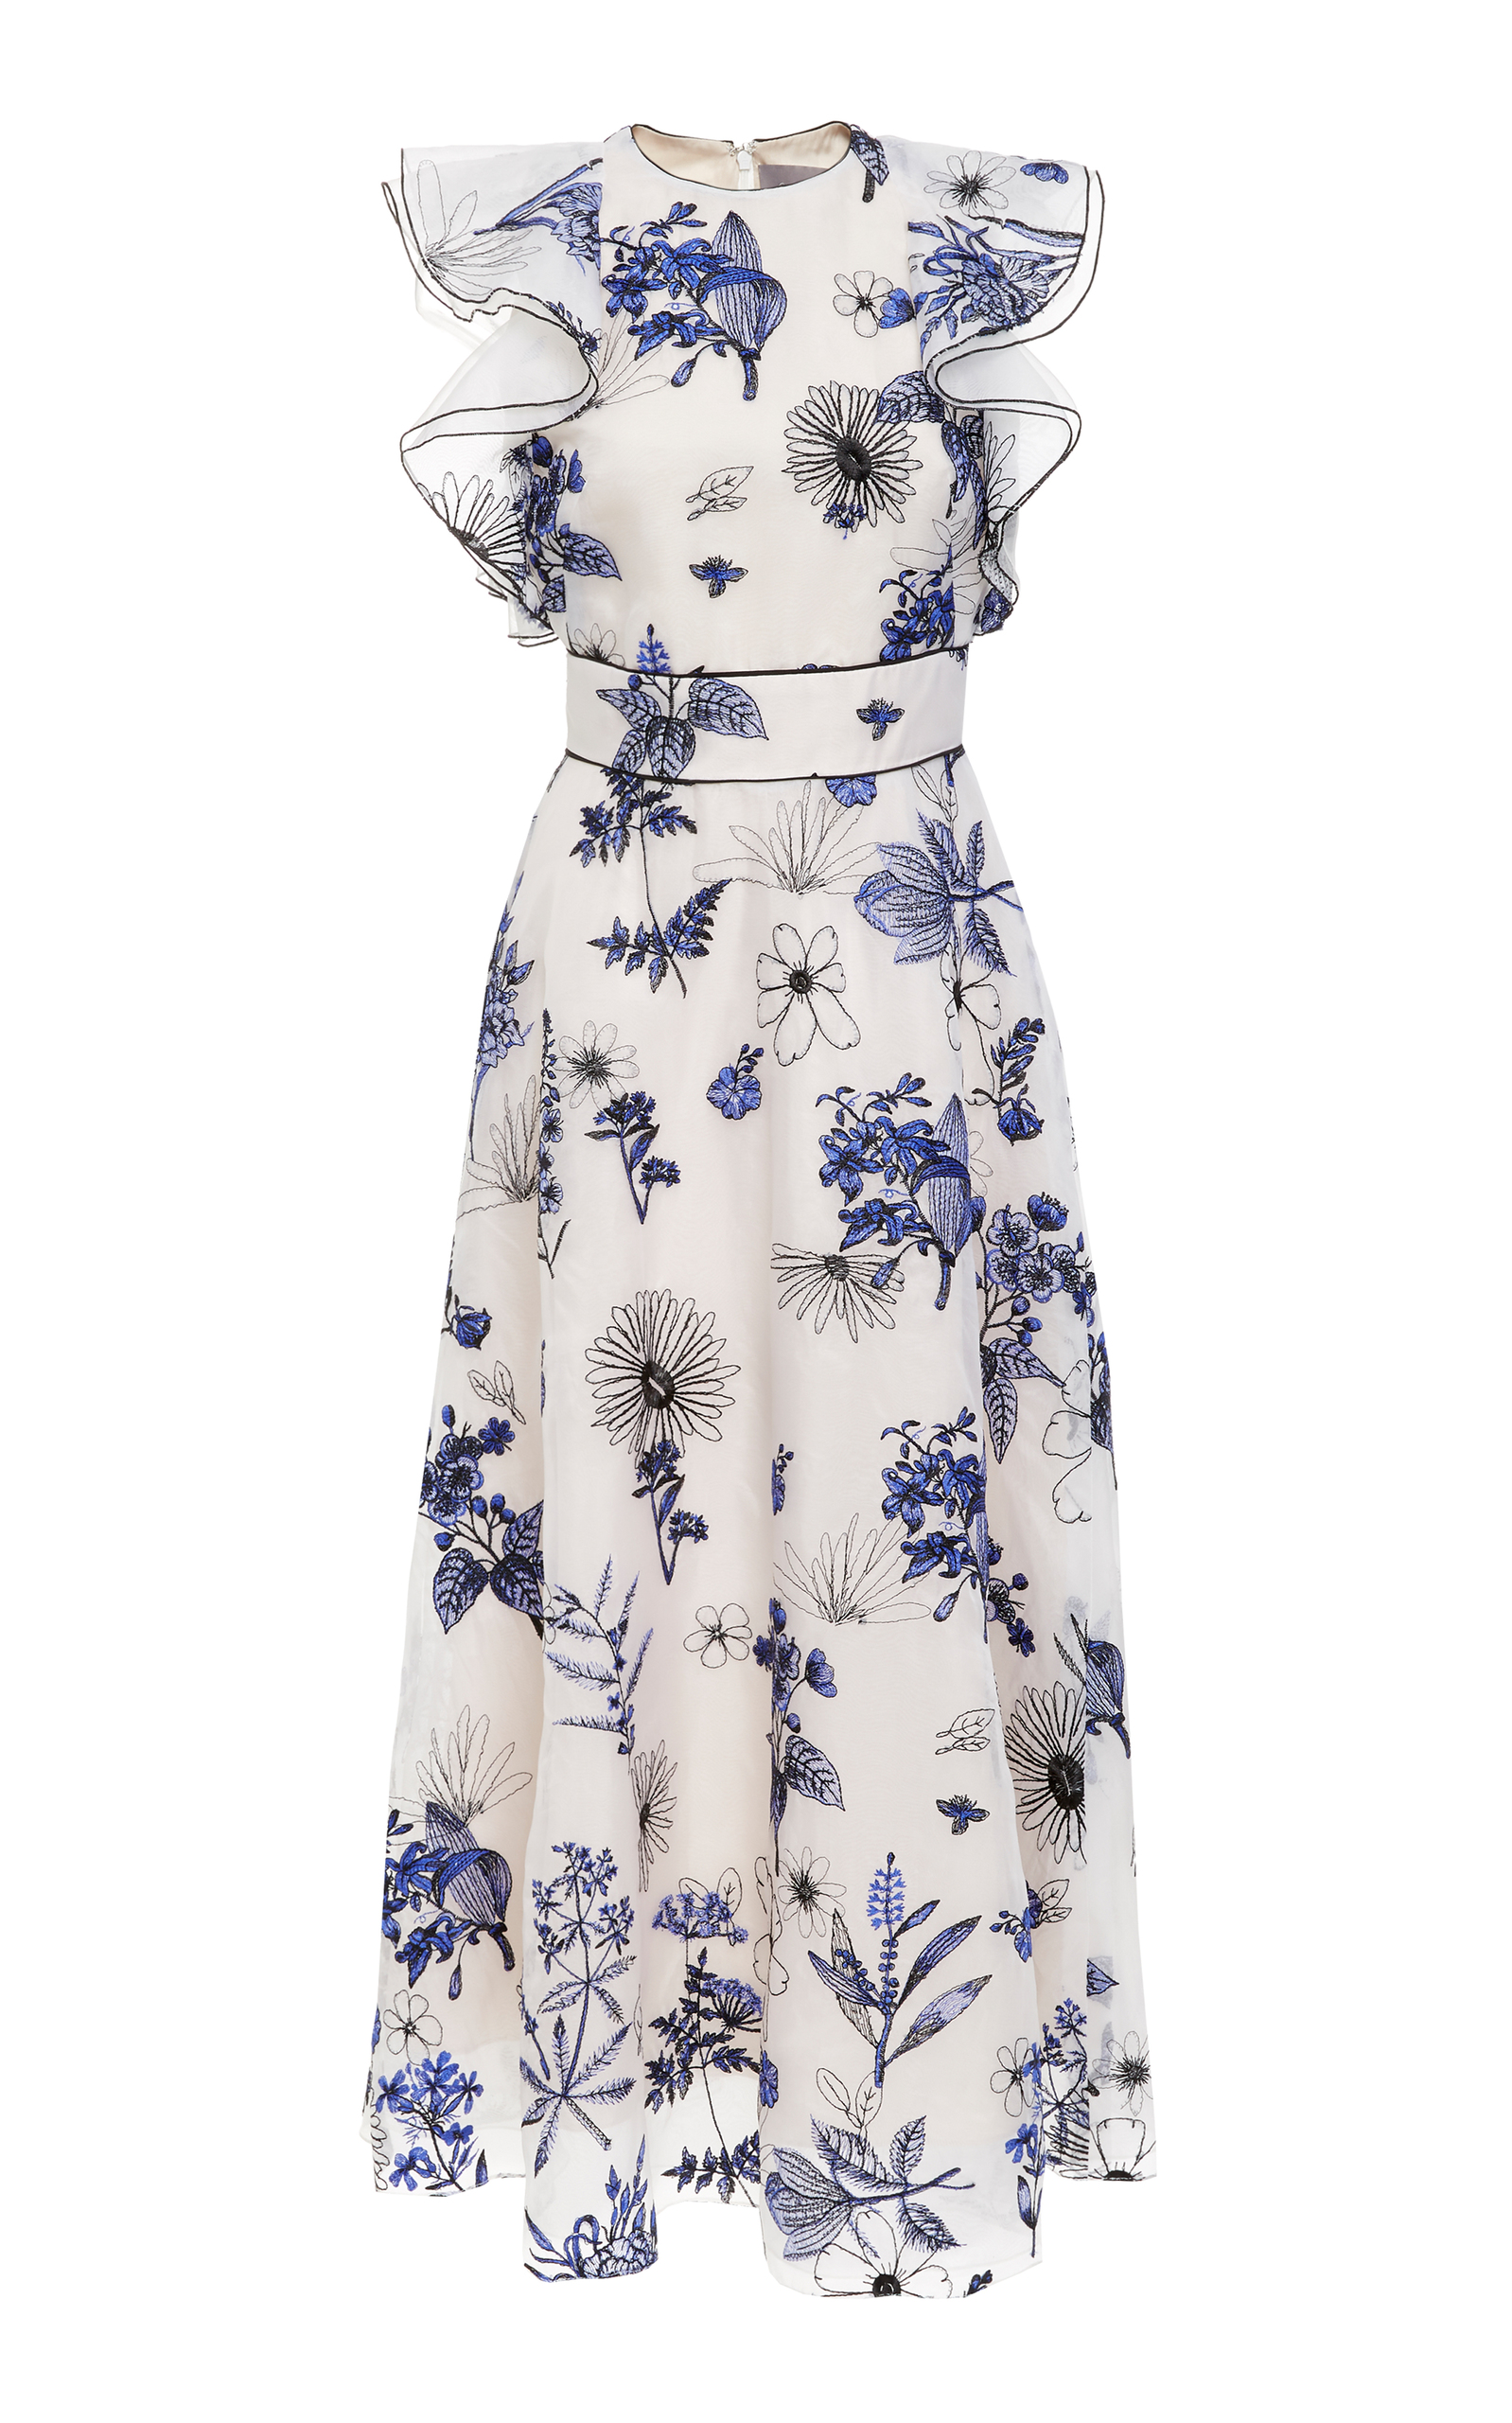 Sleeveless Floral-Embroidered Fit-And-Flare Tea-Length Dress in White